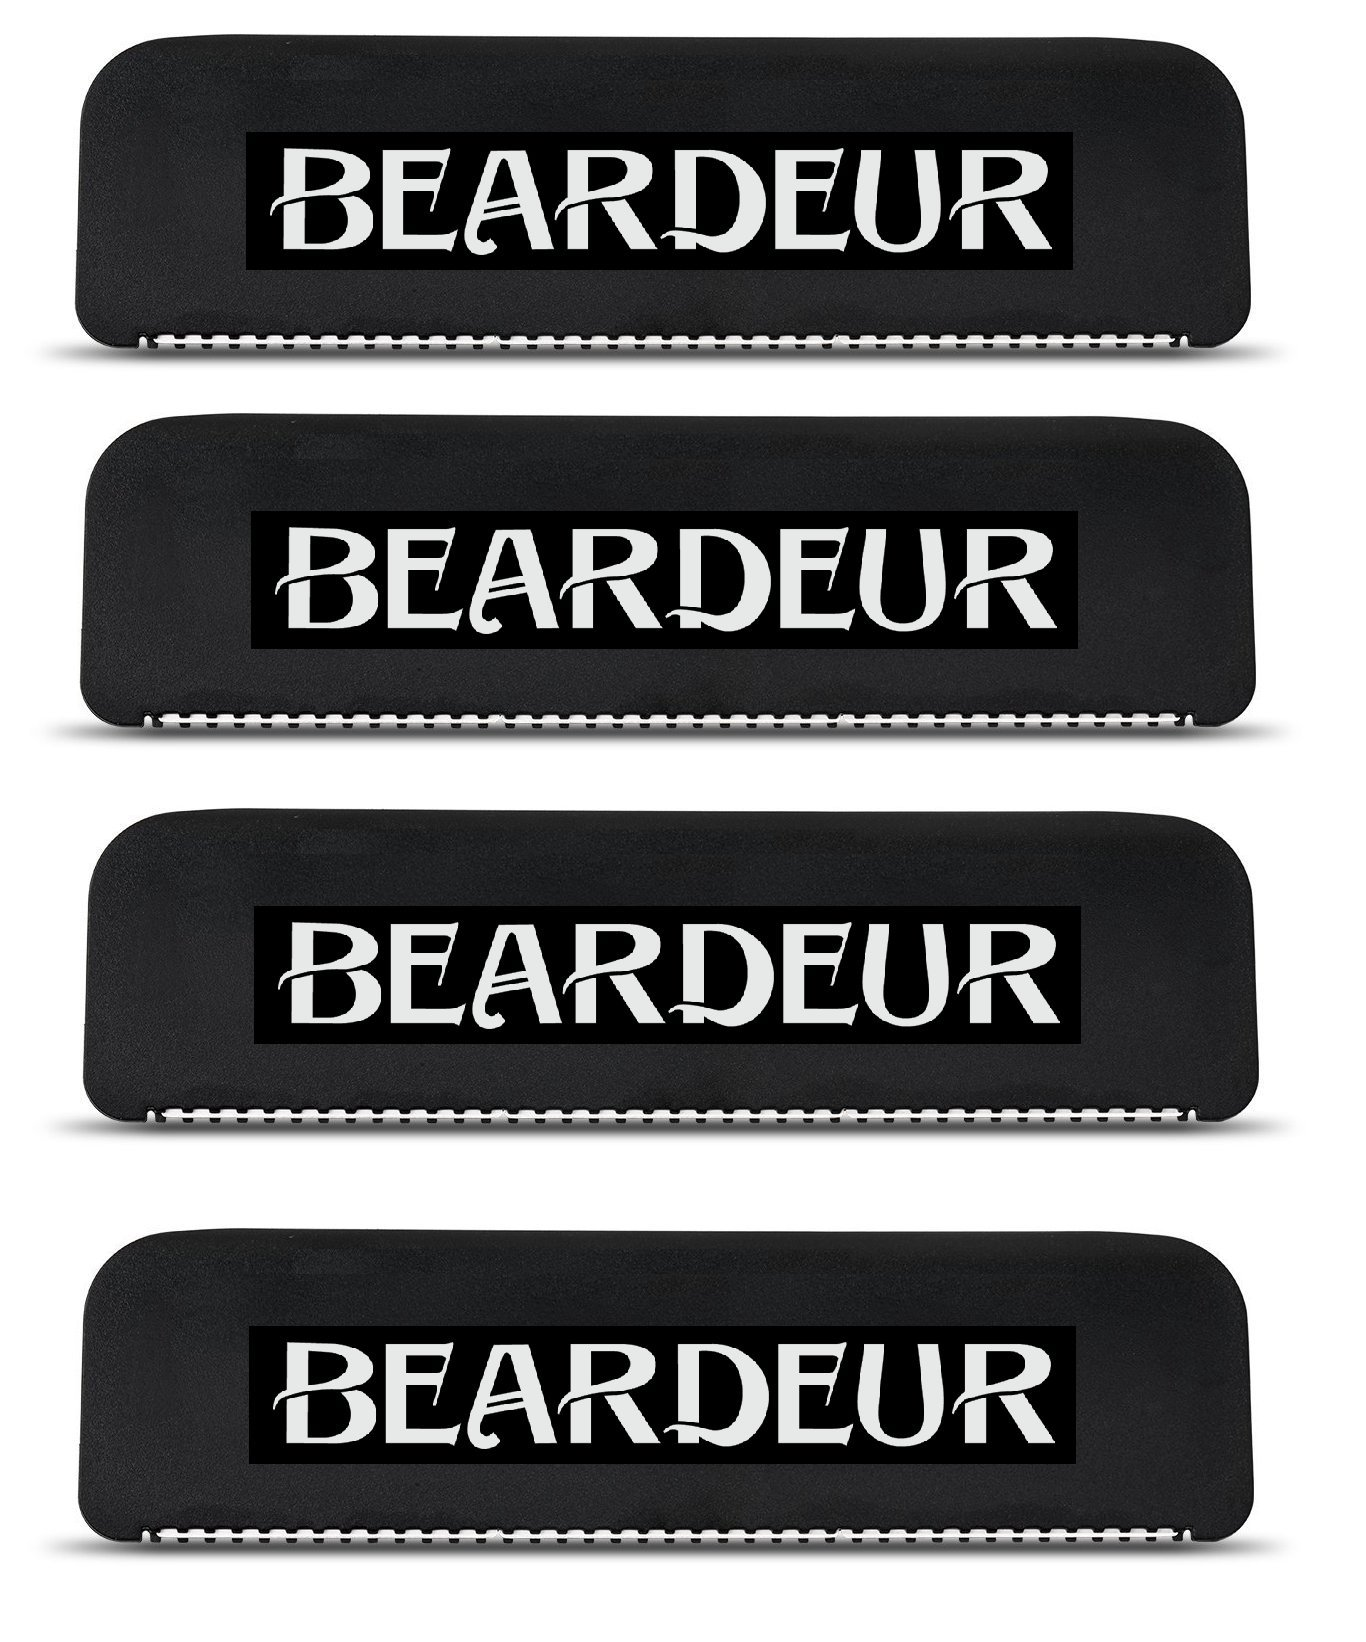 Men's Back Hair Shaver _ Refill Blades - Replacement Cartridges_ Remove Unwanted Hair Easily_ New, Safe & Durable Design, Perfect For Dry & Wet Use (Set of 4 Back Shaver Blades)